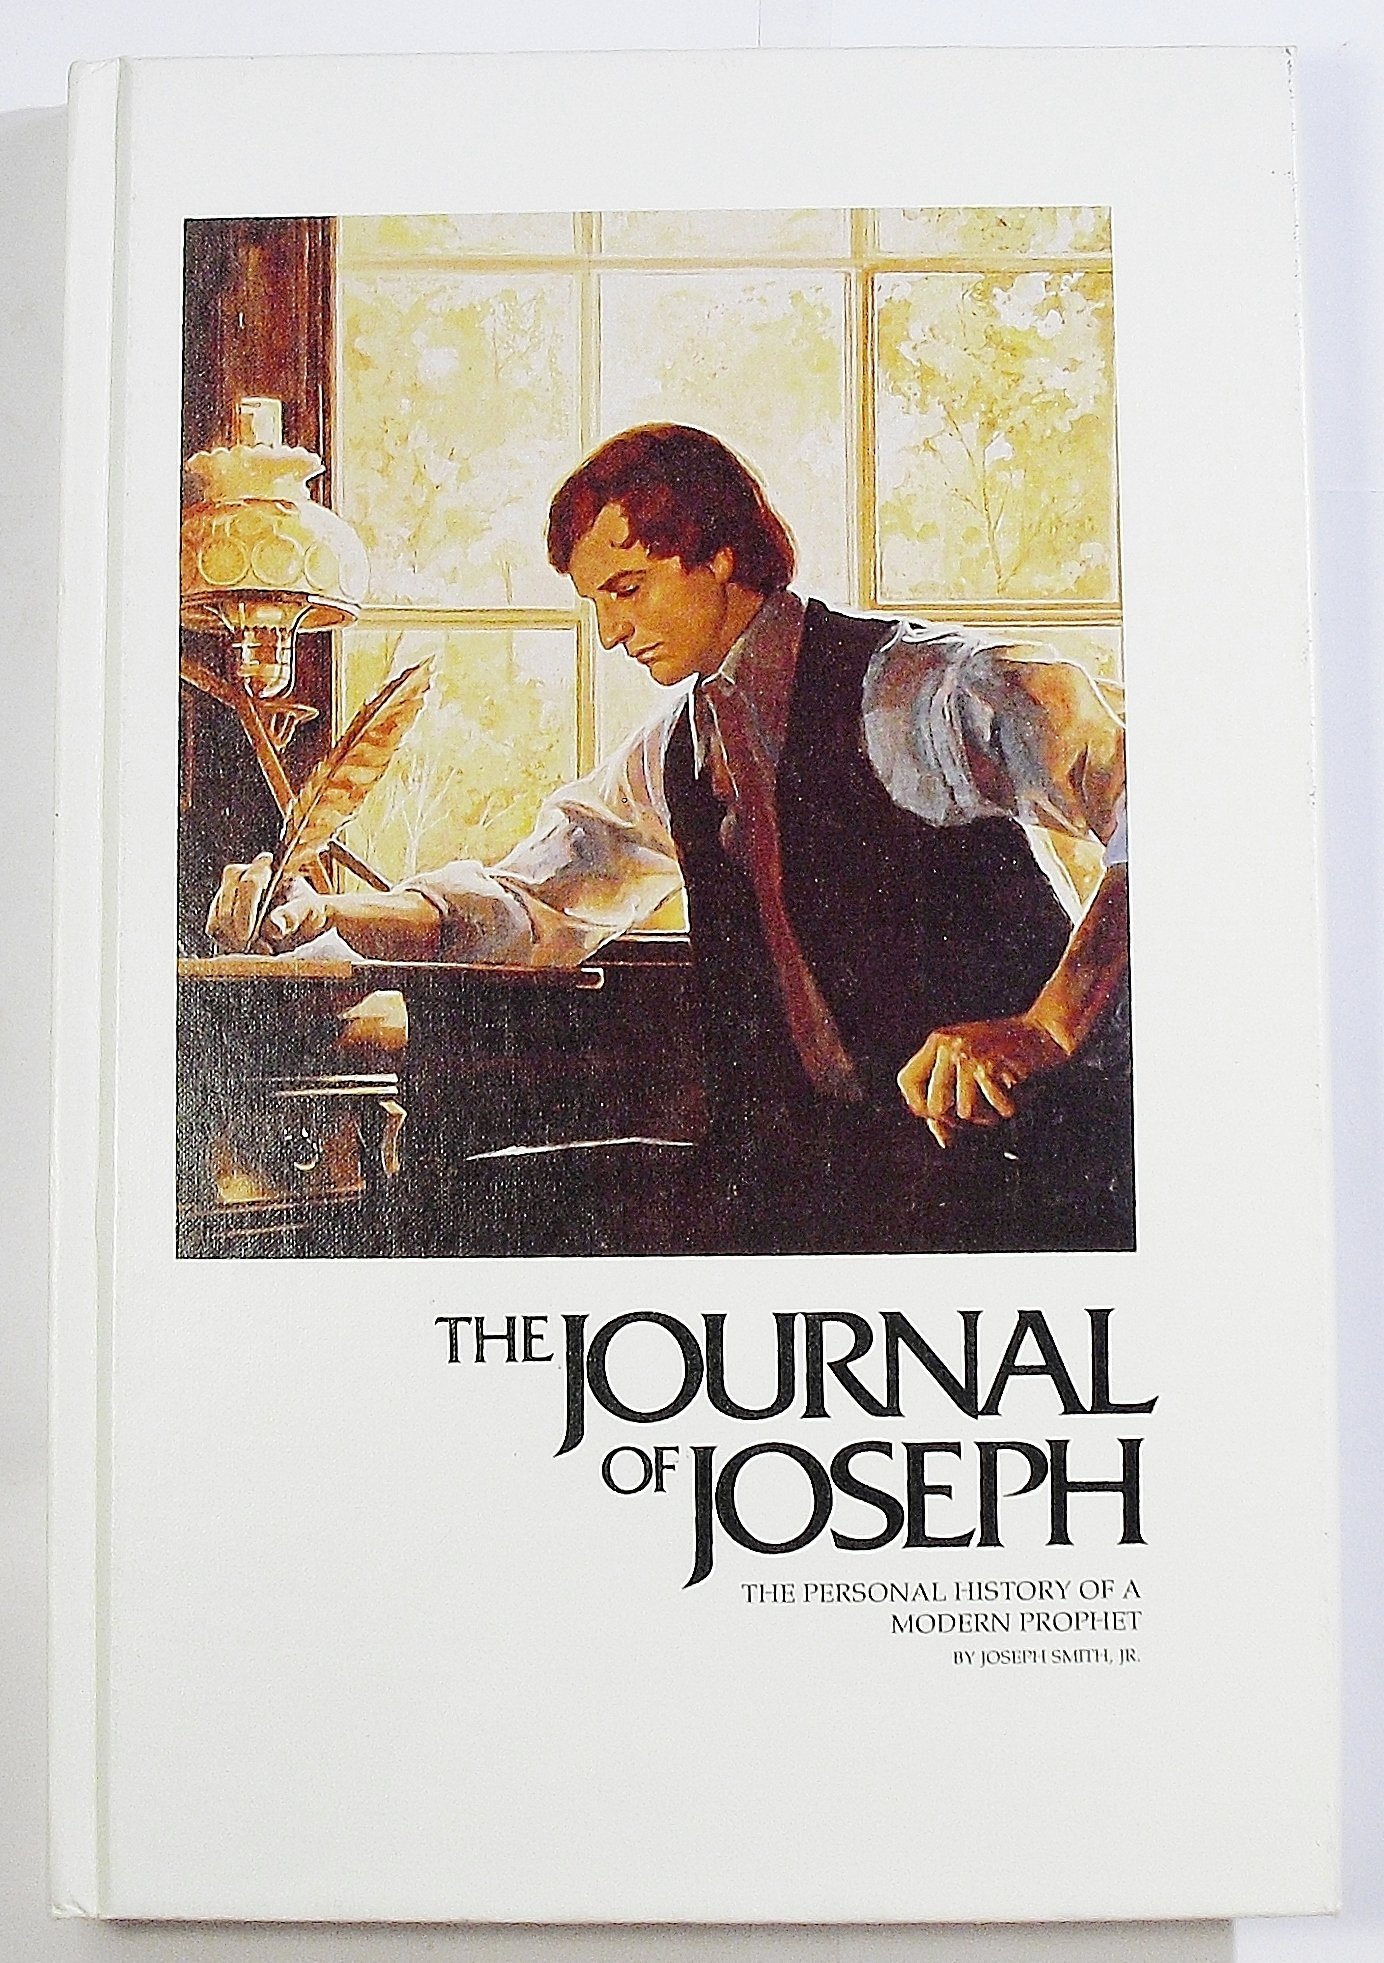 THE JOURNAL OF JOSEPH (SMITH) -  The Personal Diary of a Modern Prophet, Smith, Joseph Jr. Complied by Nelson, Leland